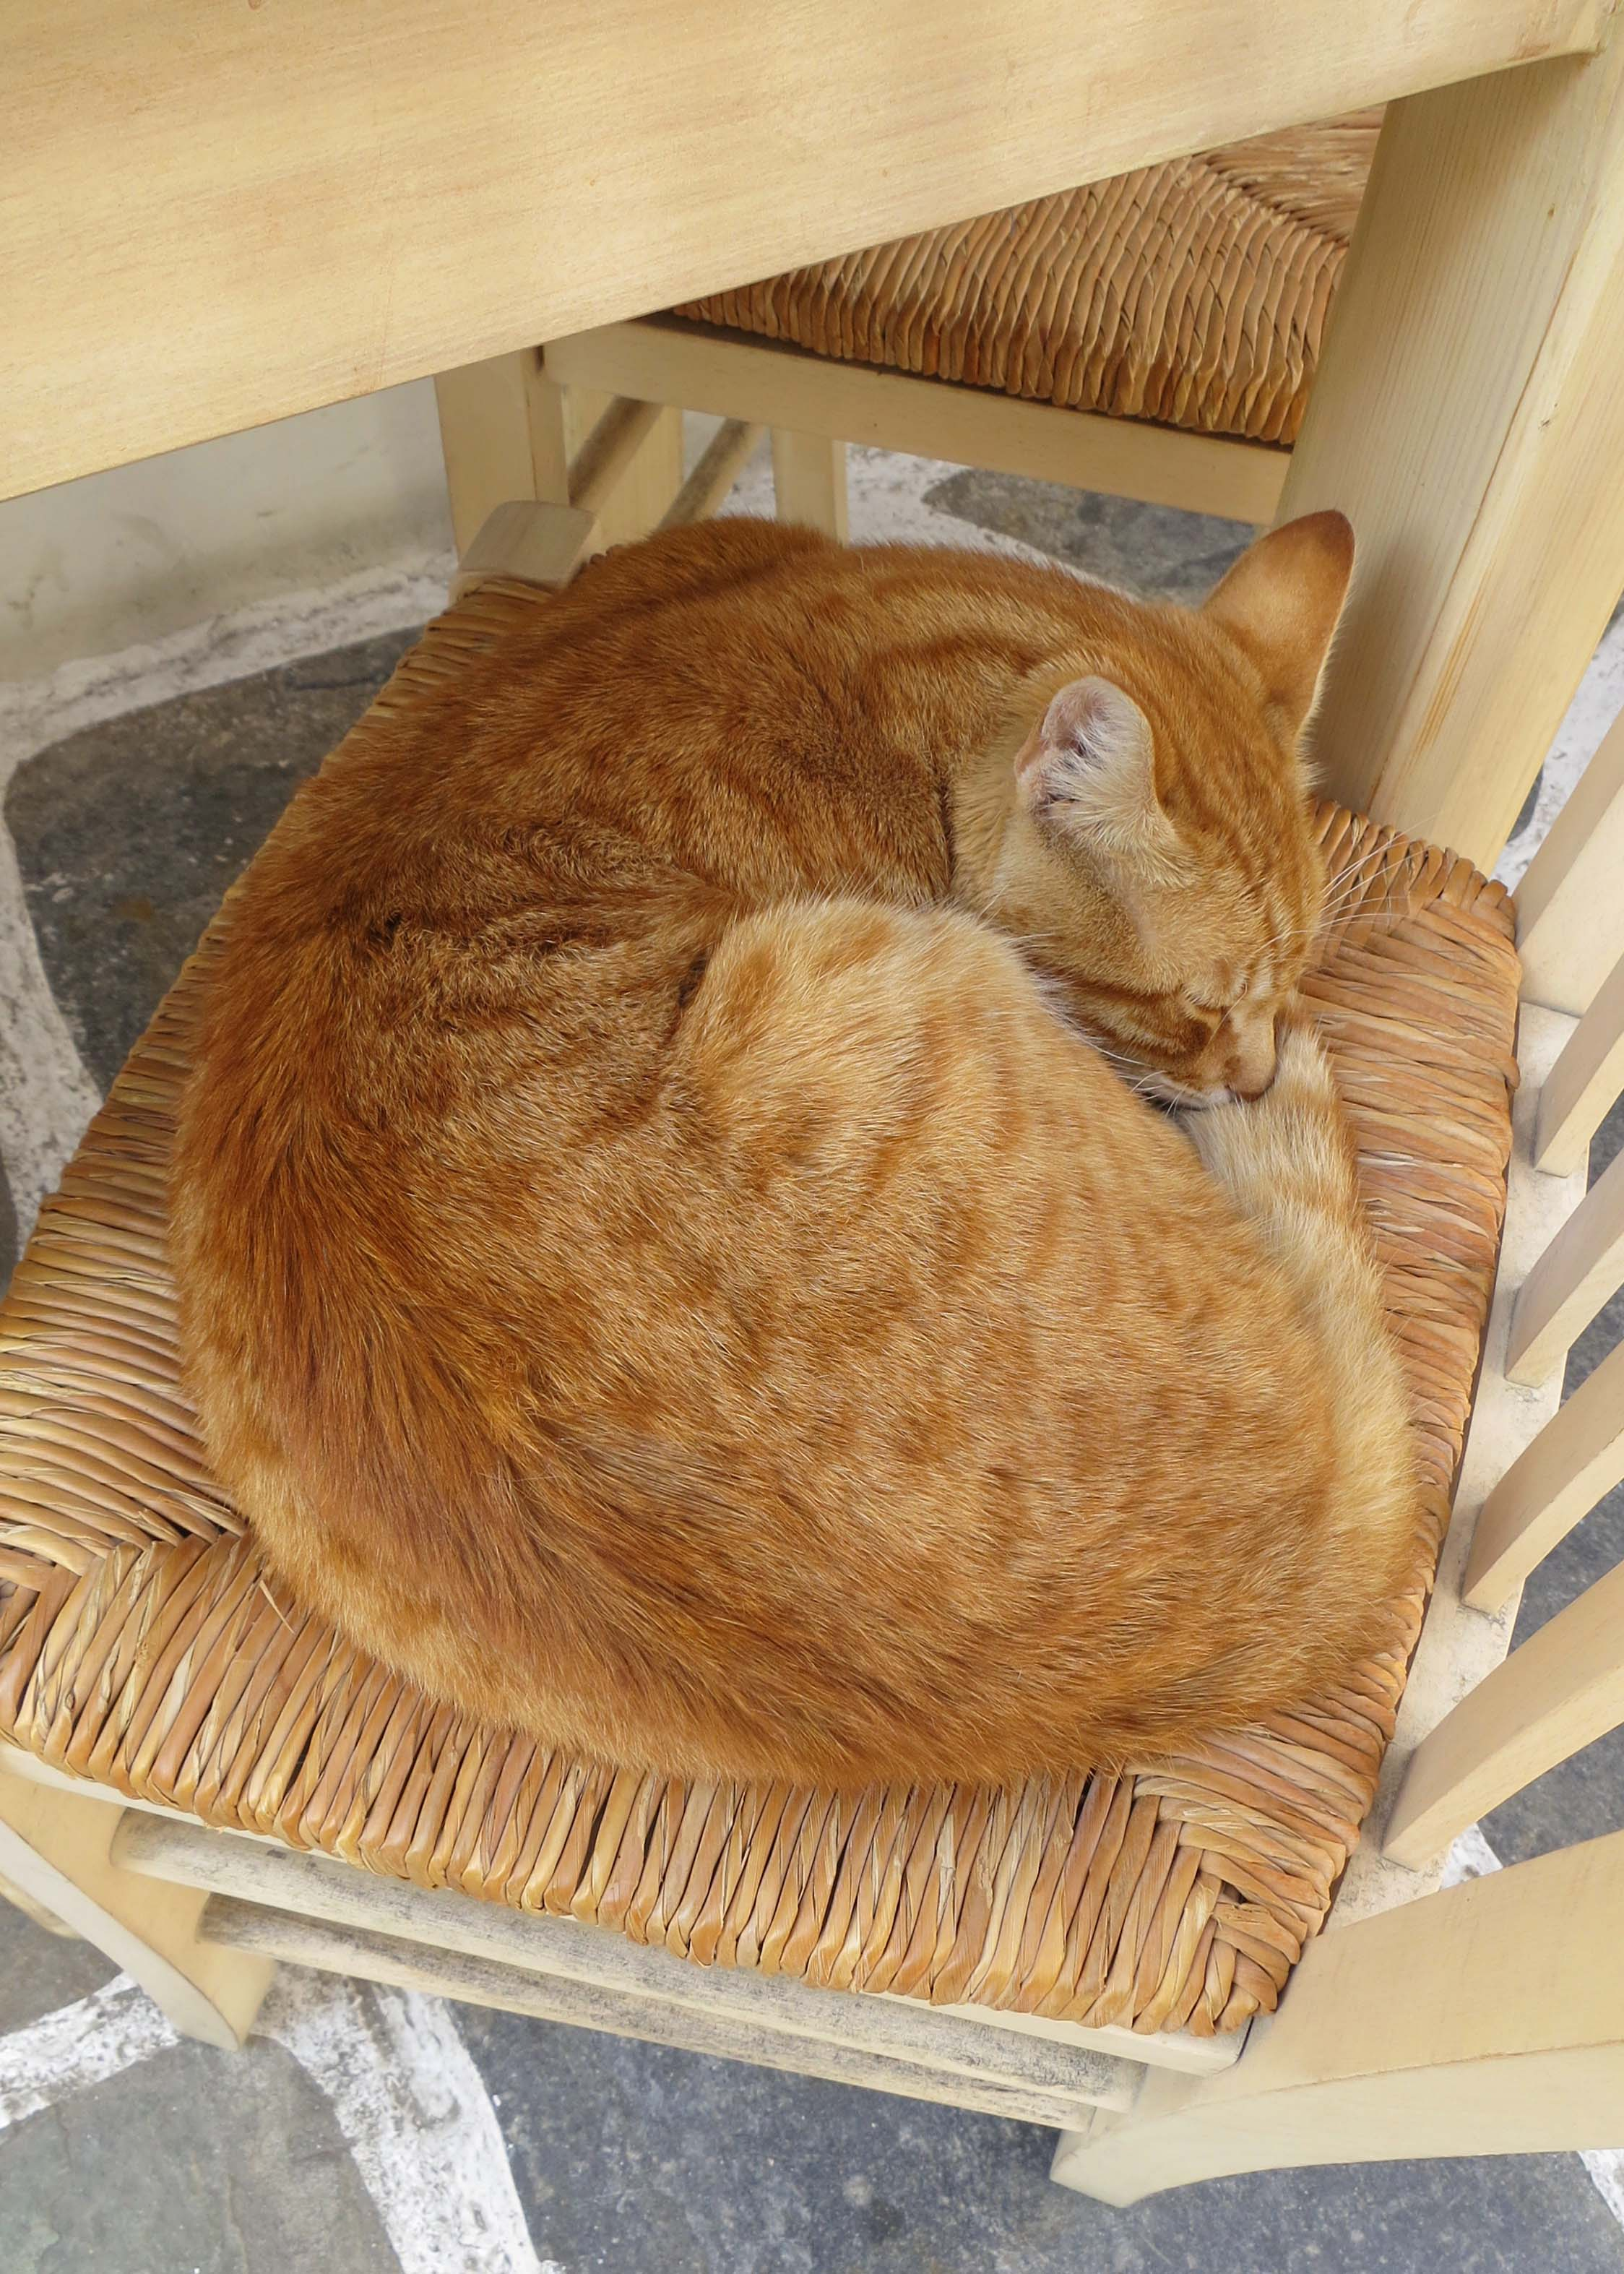 And a cat confiscated a cafe chair for its mid day snooze.